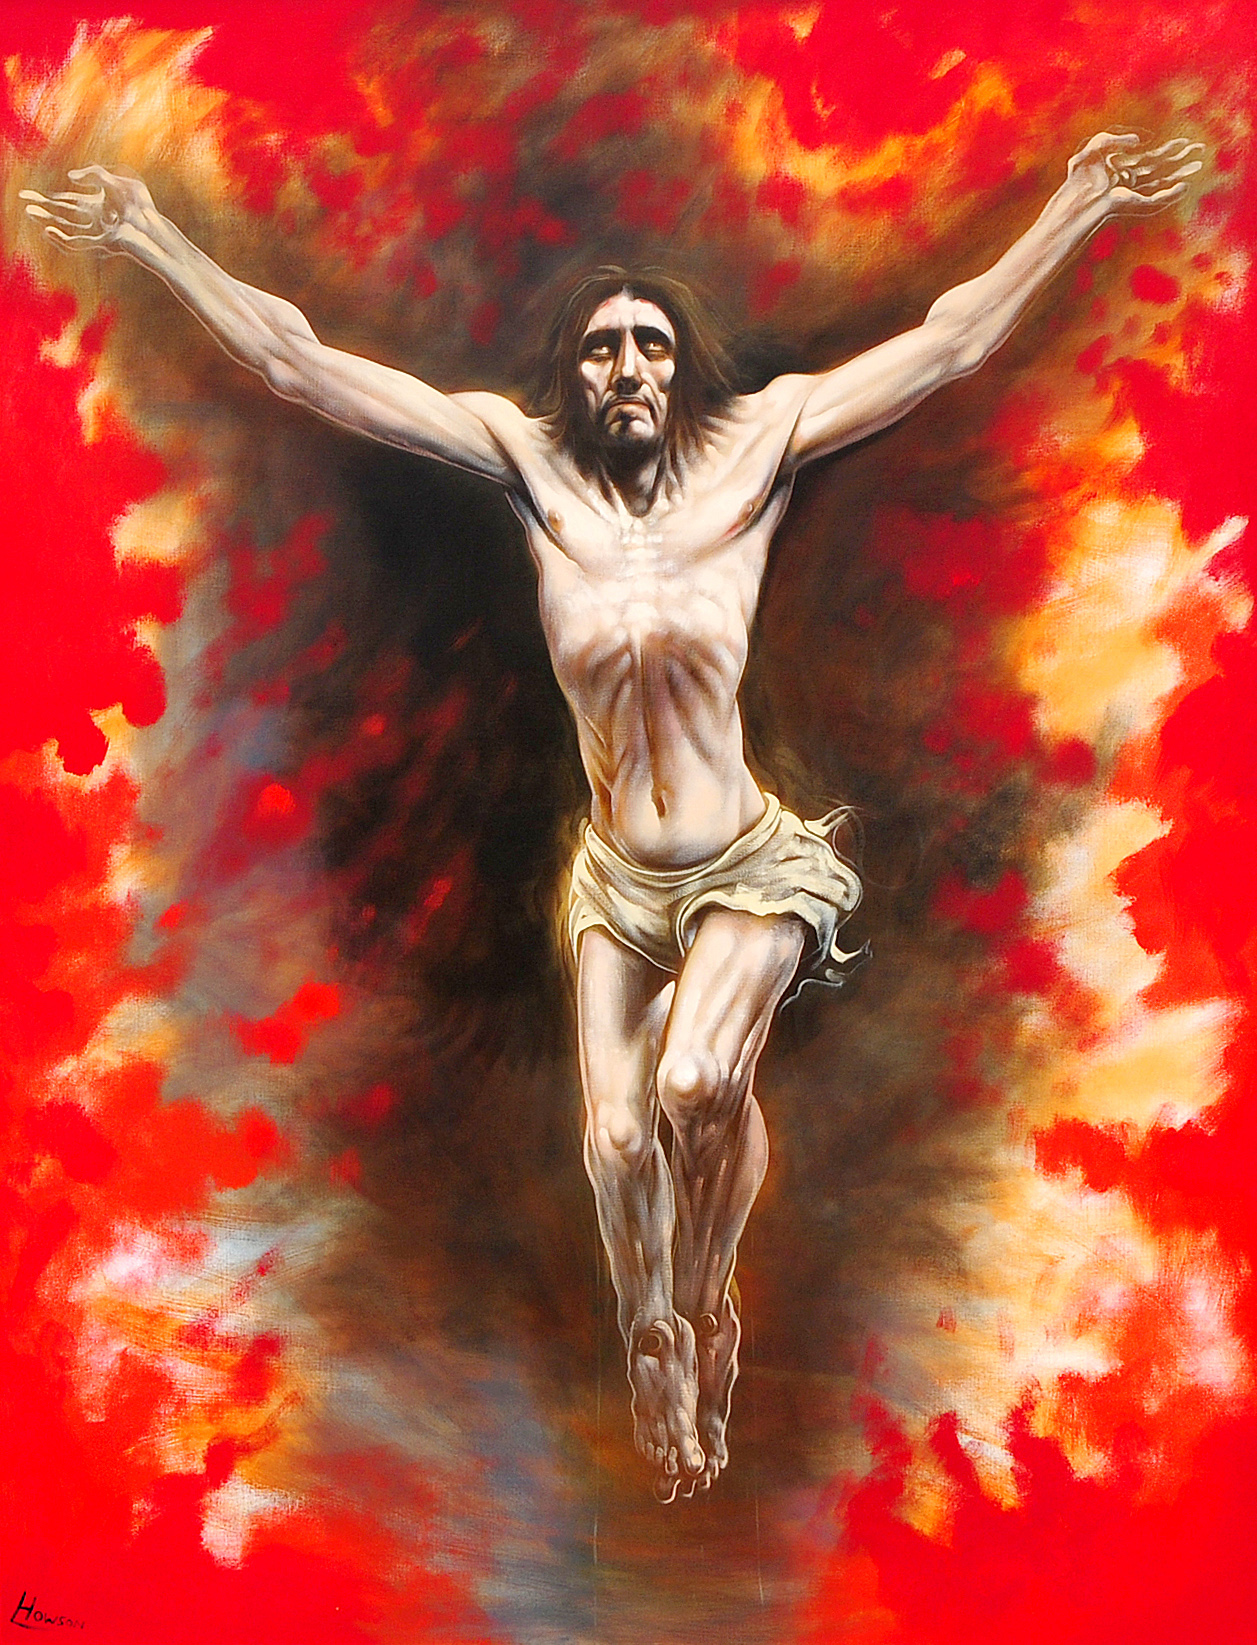 "ARR Peter Howson, (b.1958) Crucifixion, an epic representation of Christ on the Cross surrounded by flames and a red sky Oil on canvas, signed lower left 94.5"" x 71"", (240cm x 180cm) Flowers Gallery label verso"